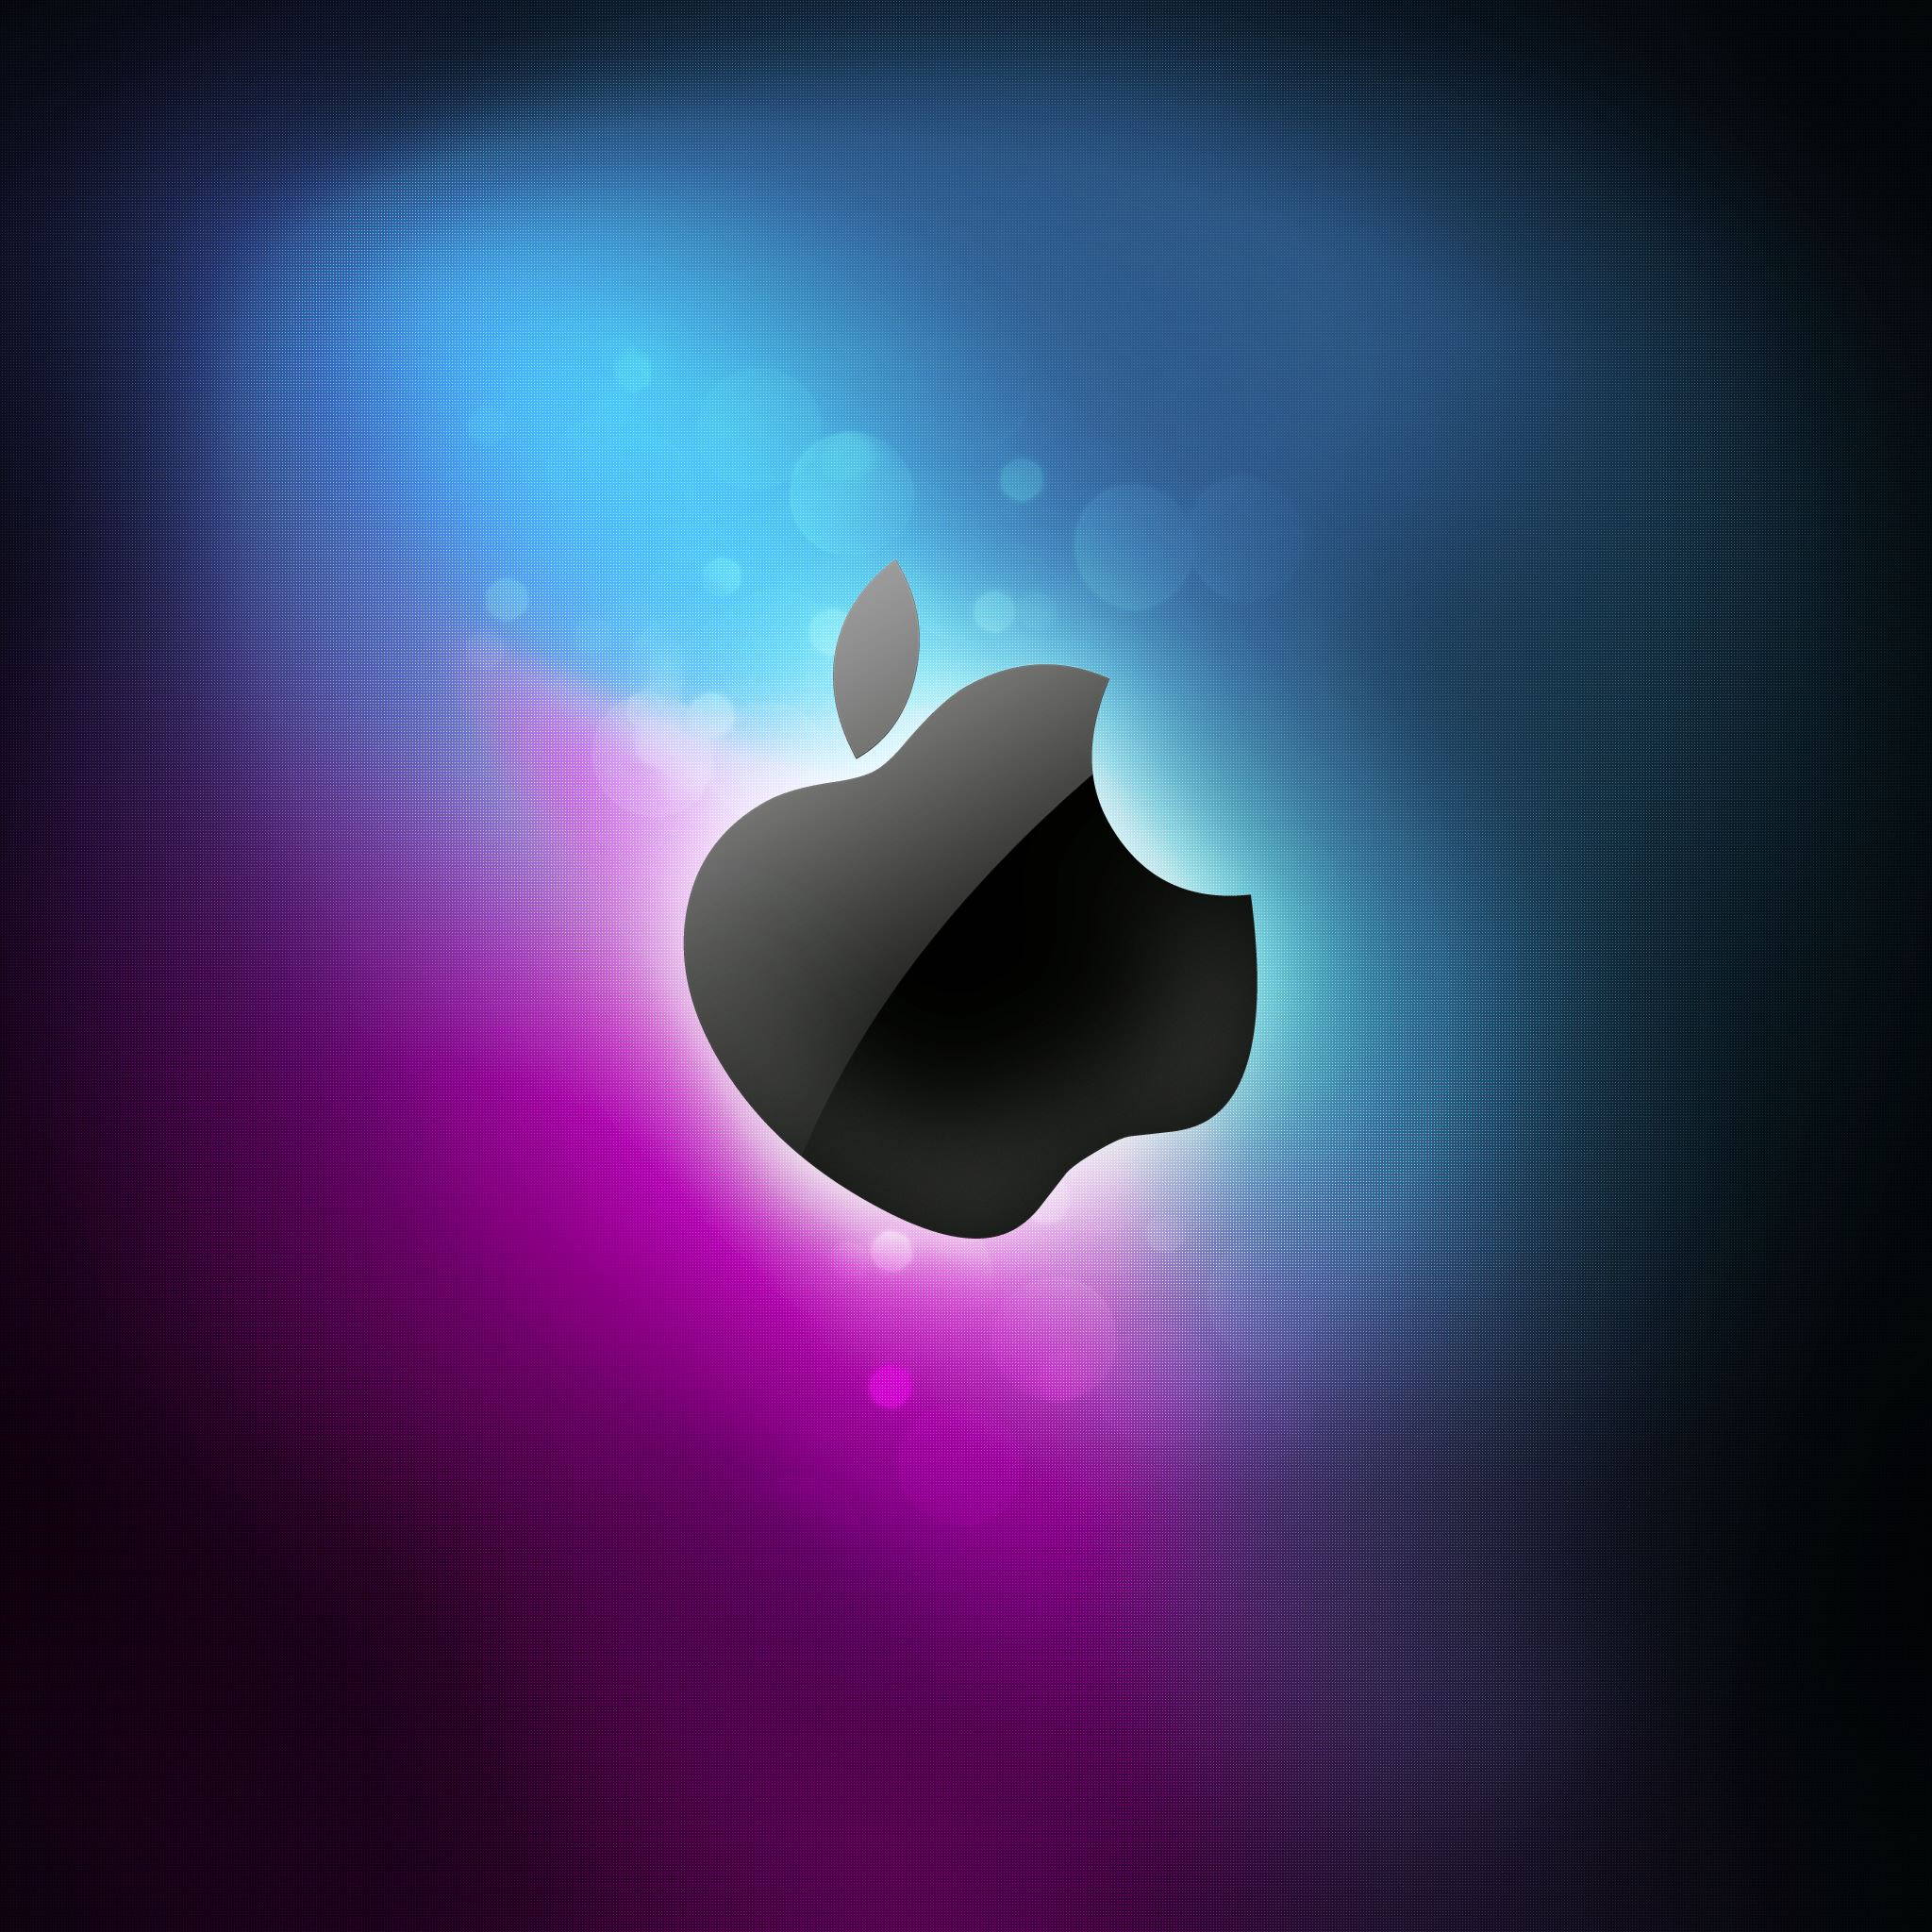 apple logo ipad air wallpaper download | iphone wallpapers, ipad